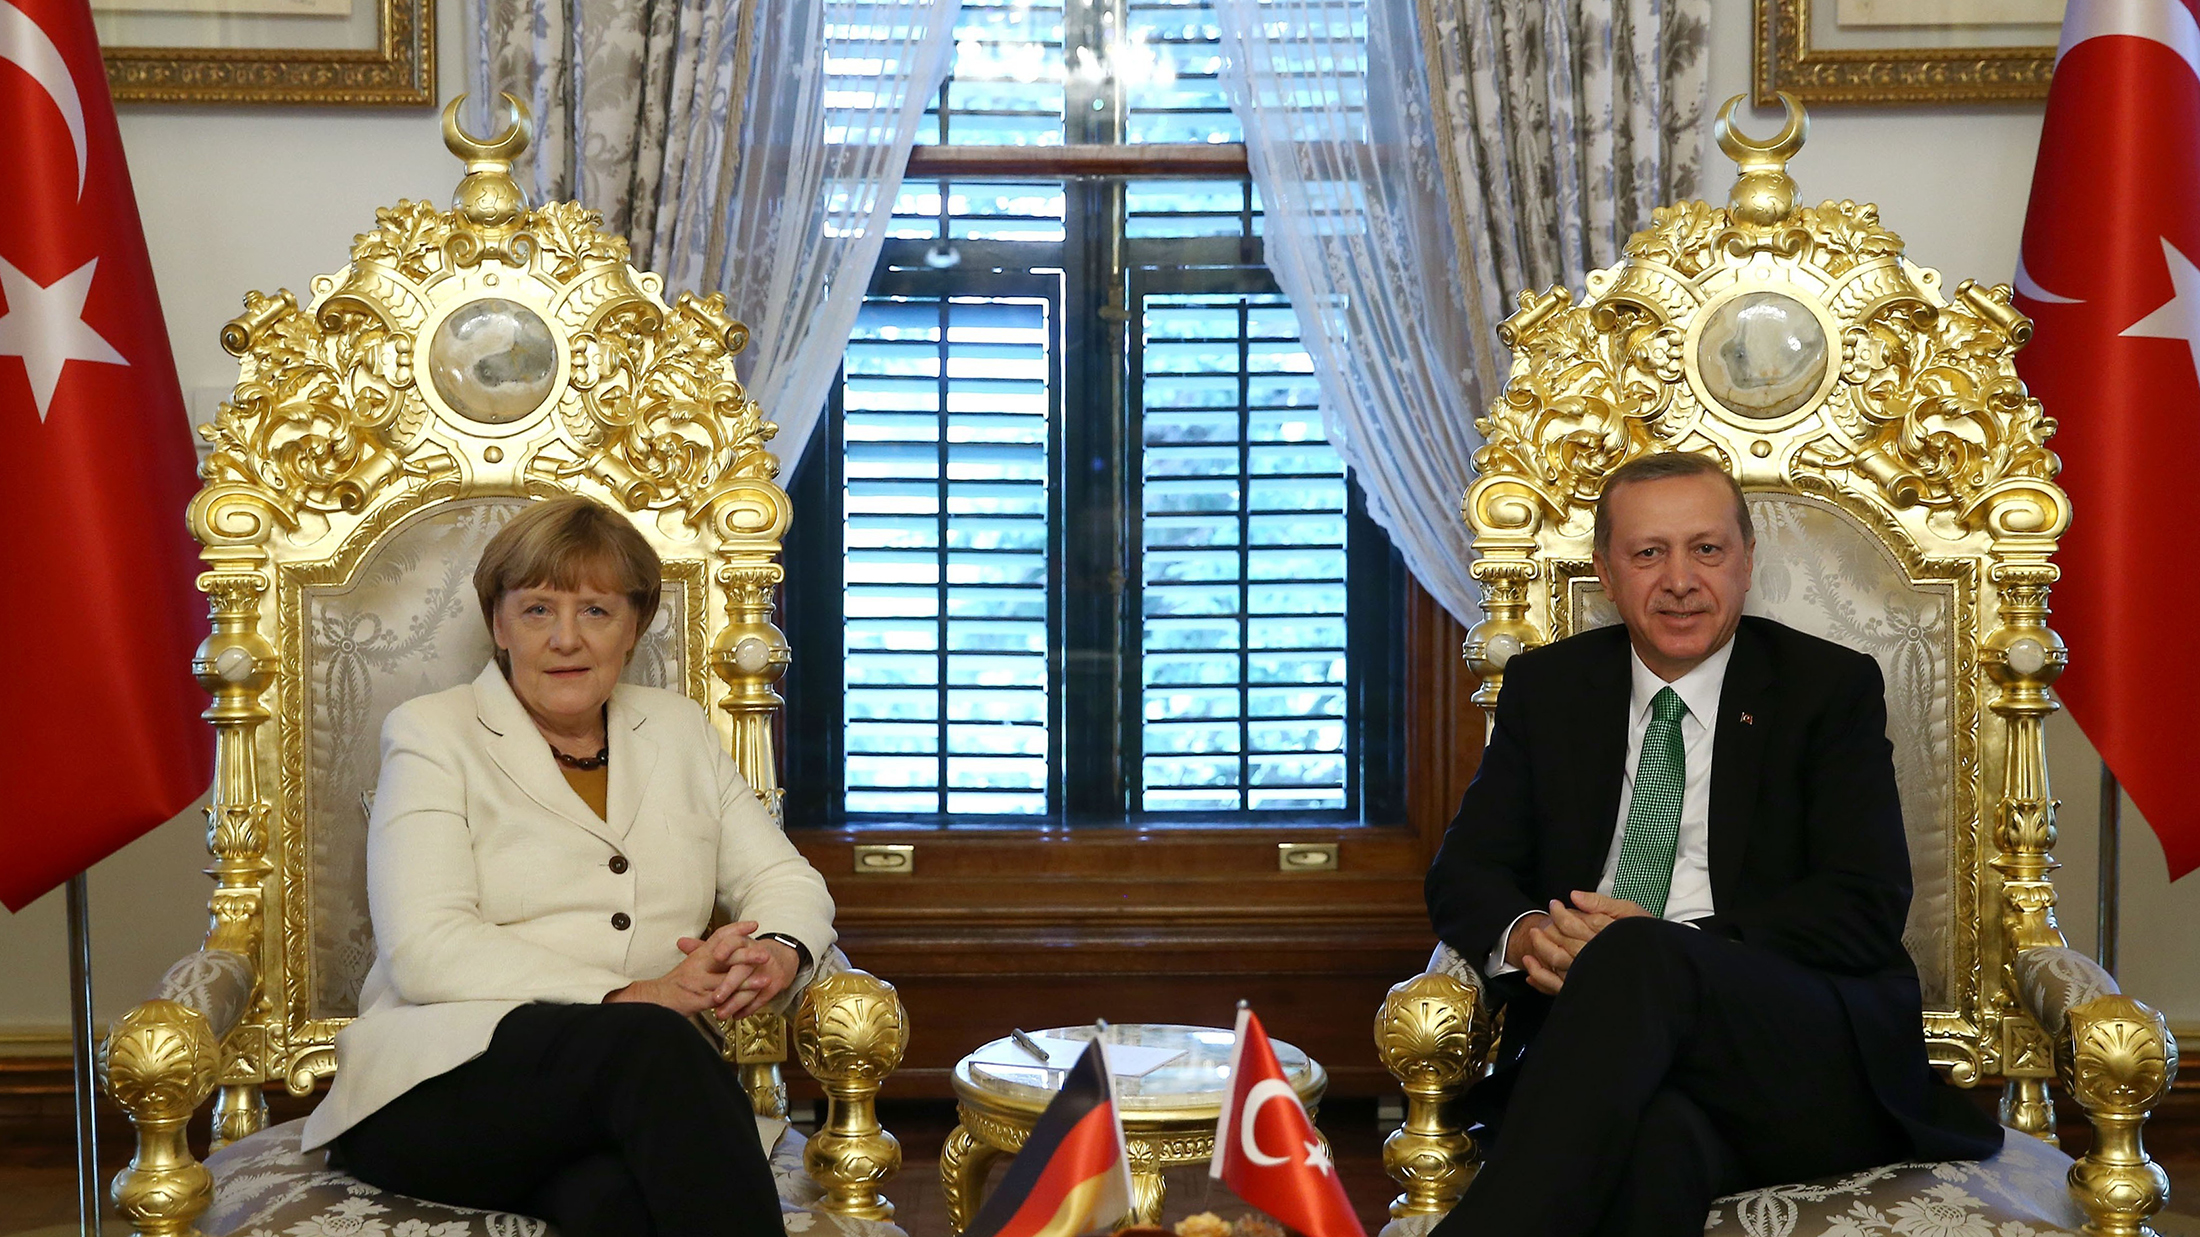 Greece to call a summit on refugees issue with the participation of Merkel, Erdogan